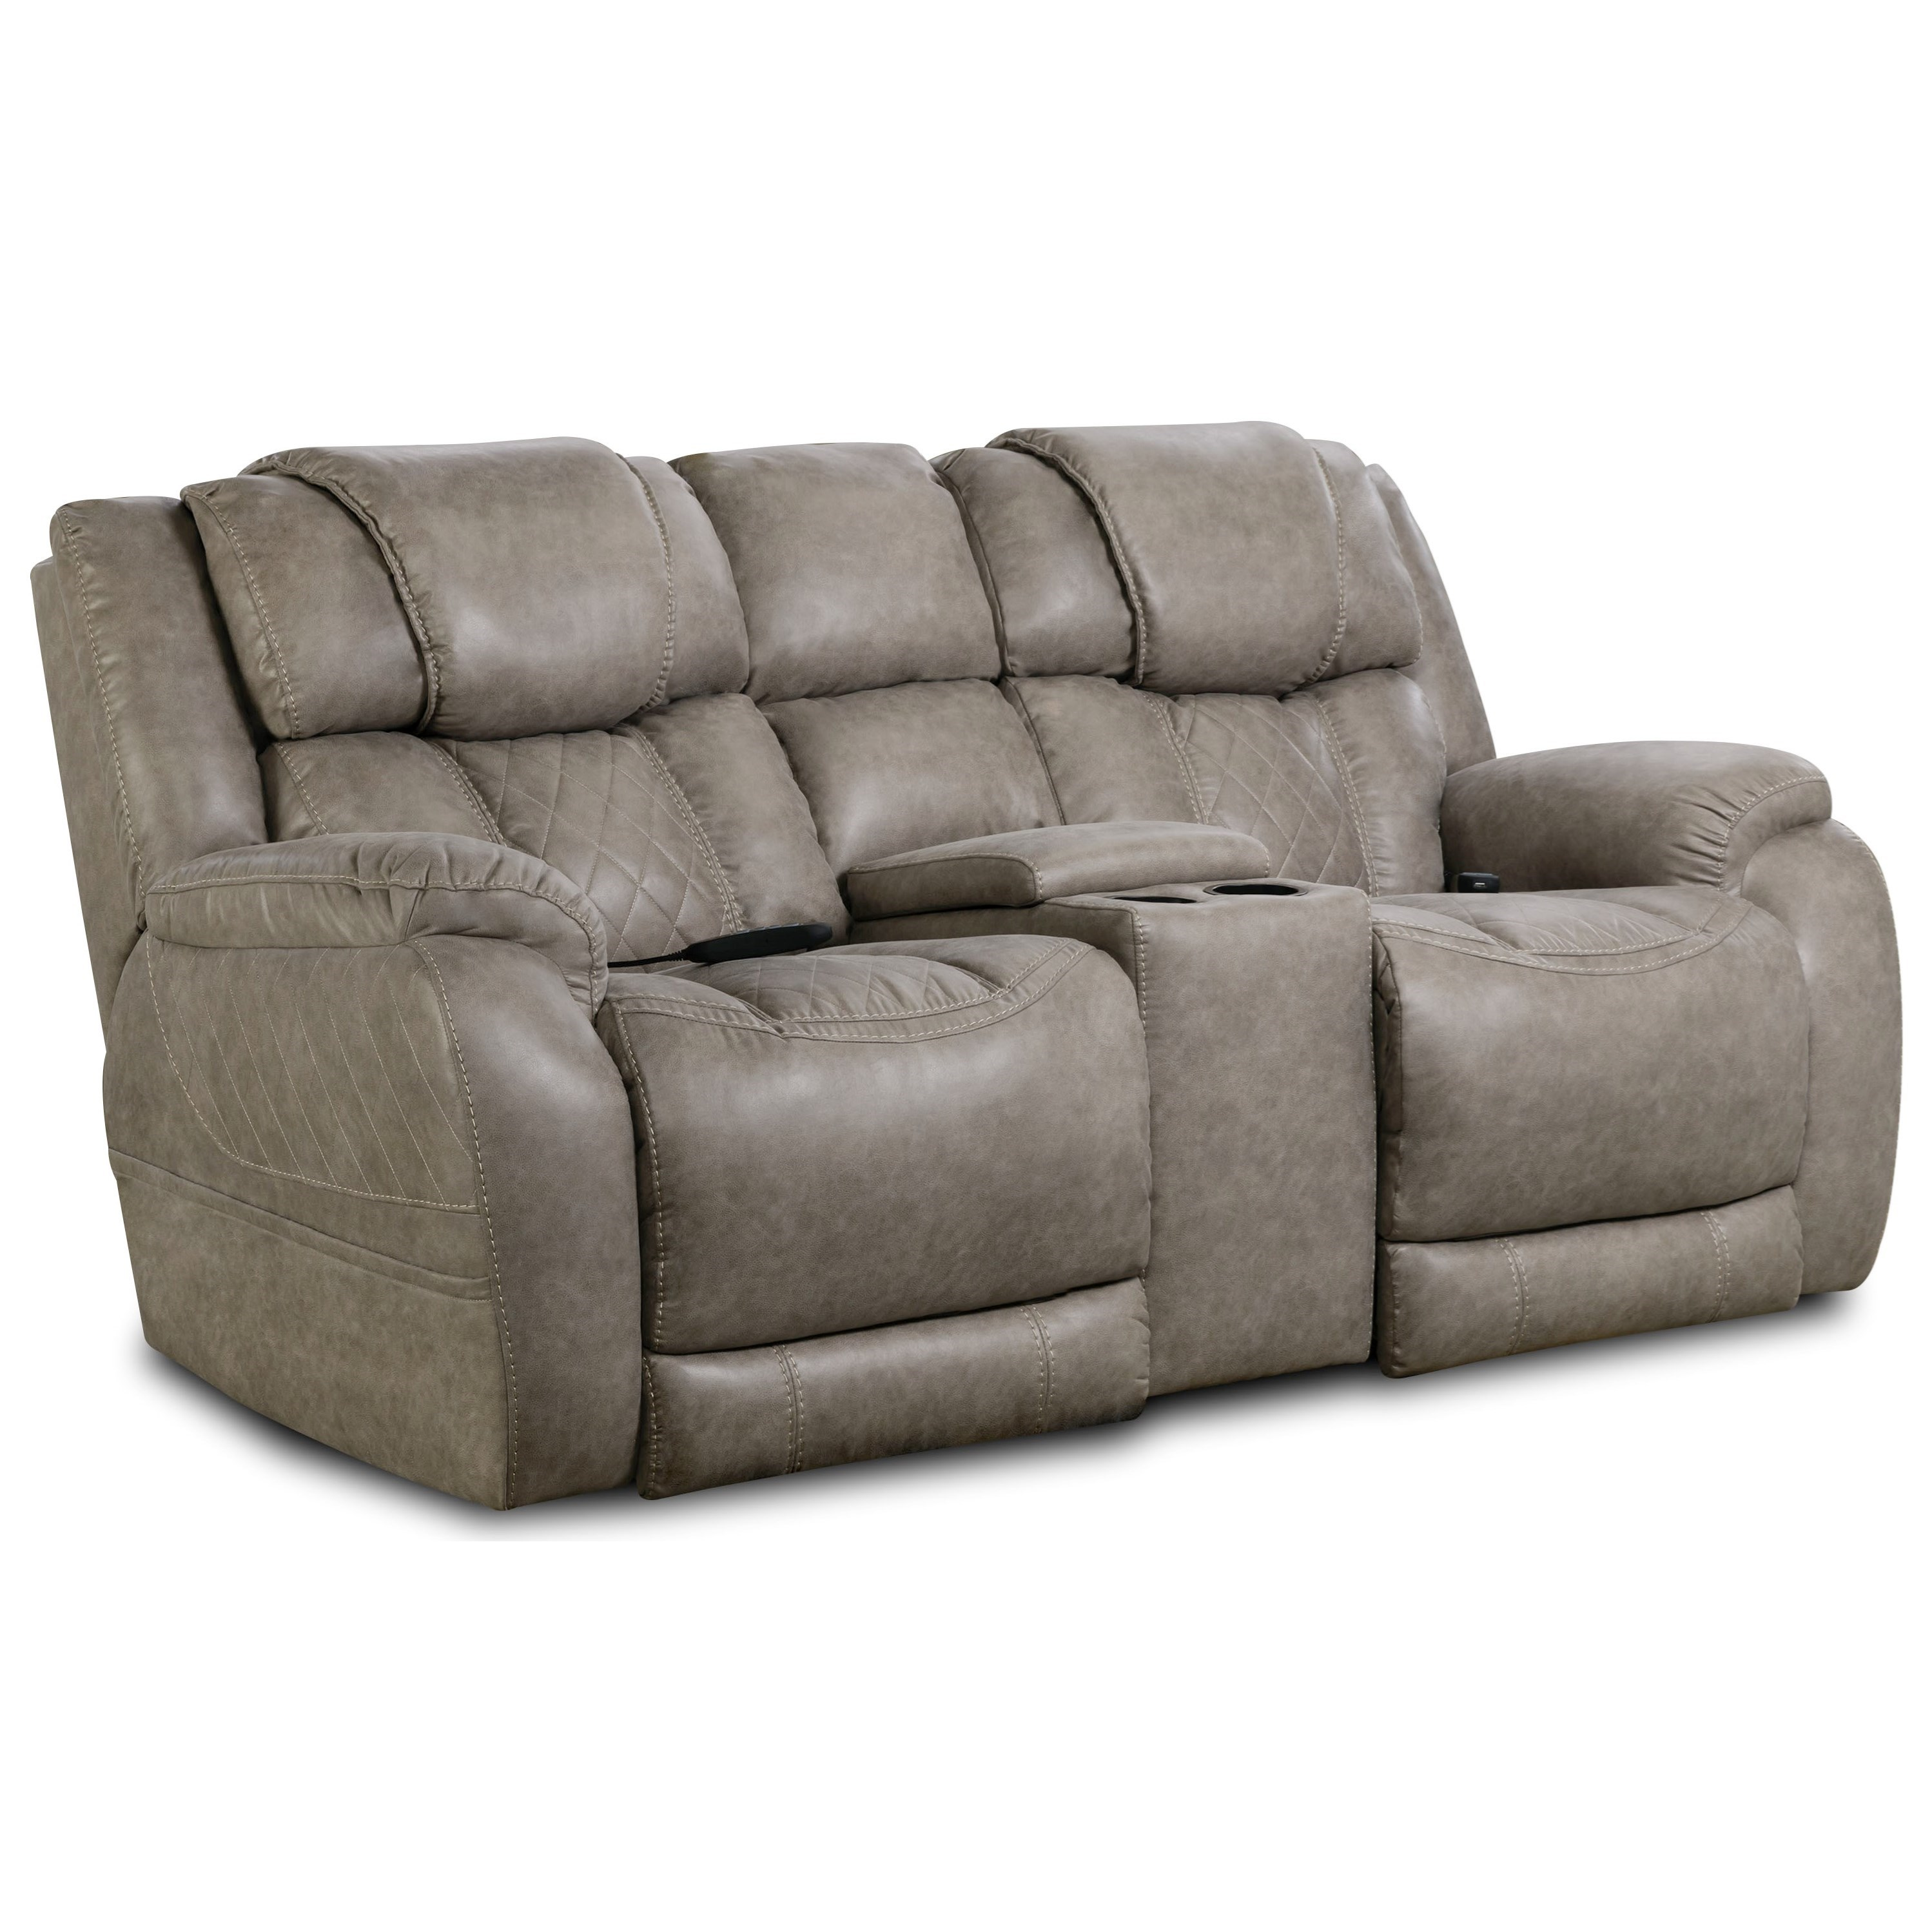 174 Power Console Loveseat by HomeStretch at Rife's Home Furniture